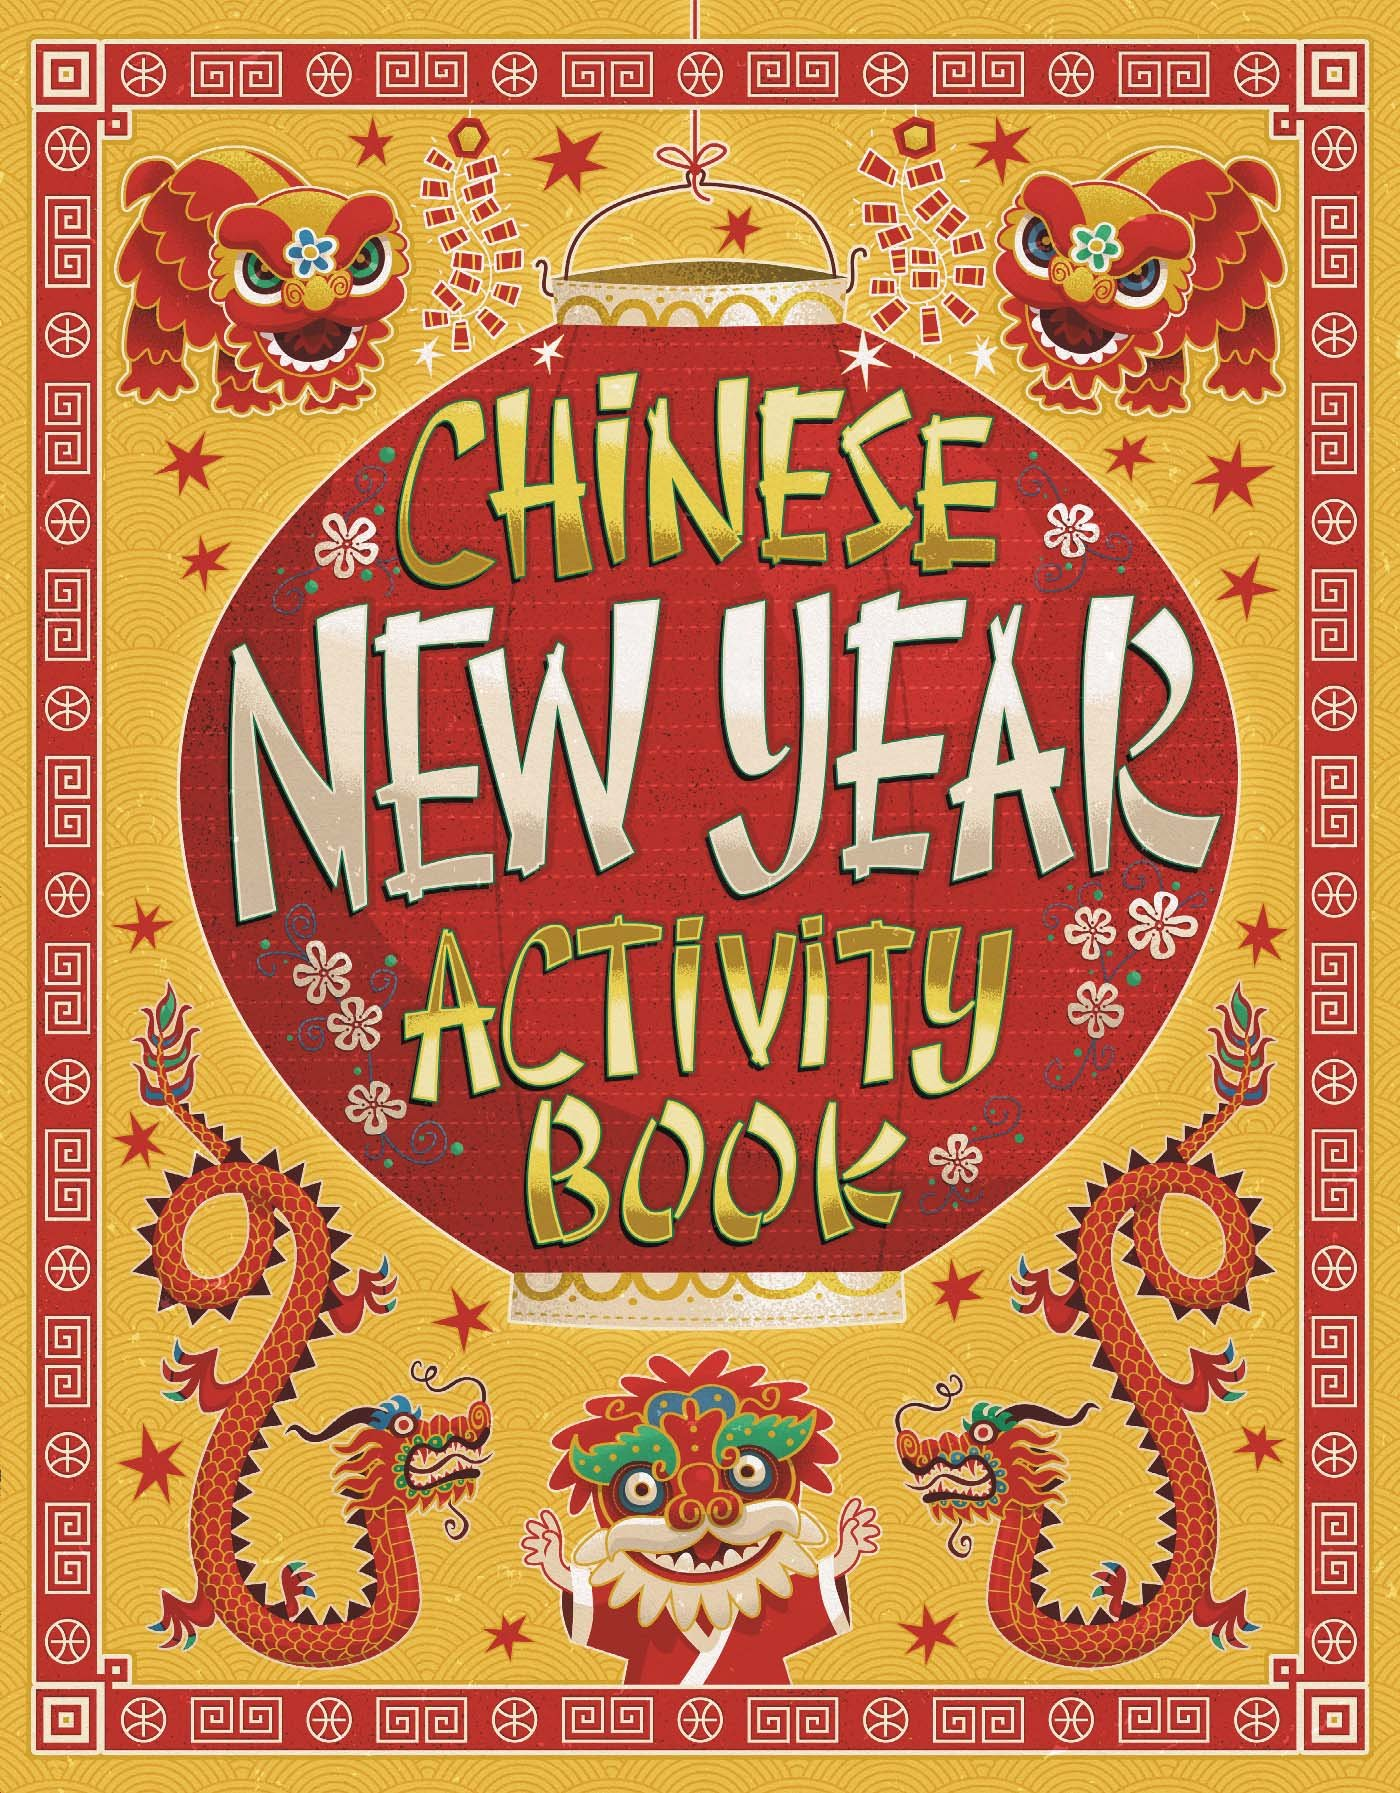 Chinese New Year Activity Book